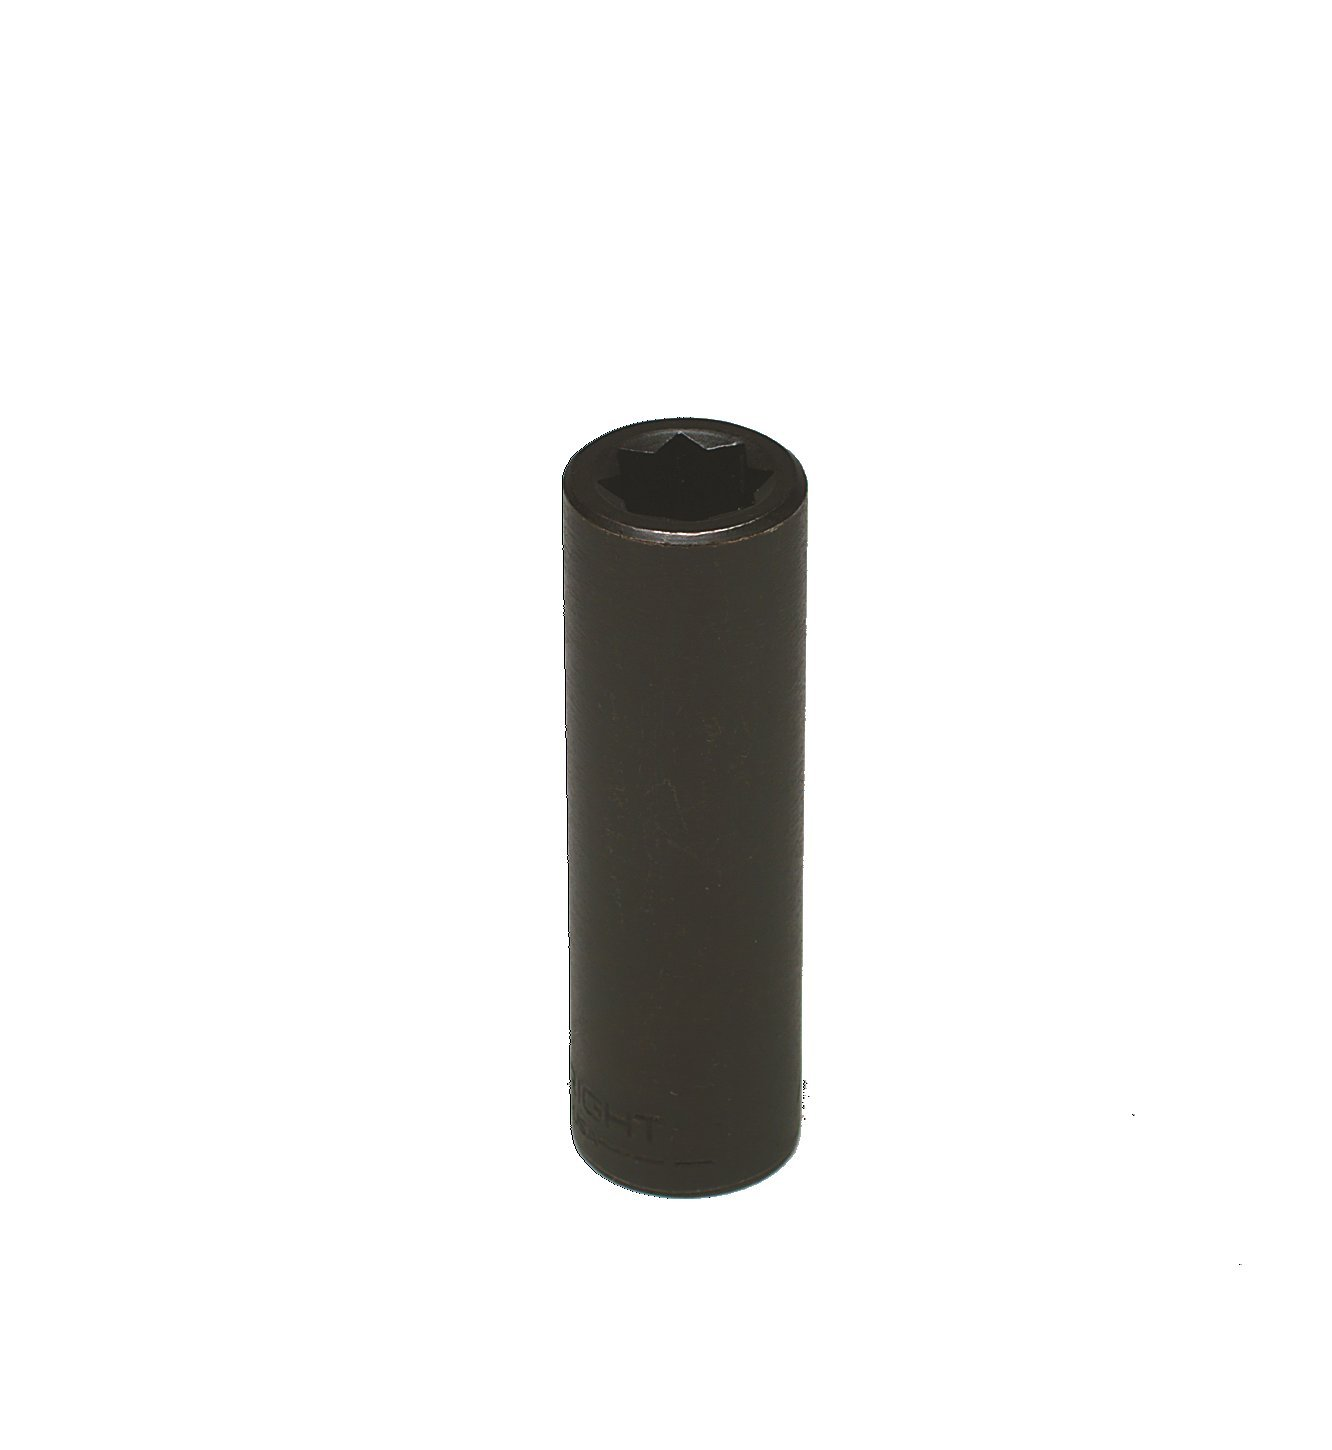 Double Square Deep Impact Socket Wright Tool 4786 13//16-1//2 Drive 8-Point